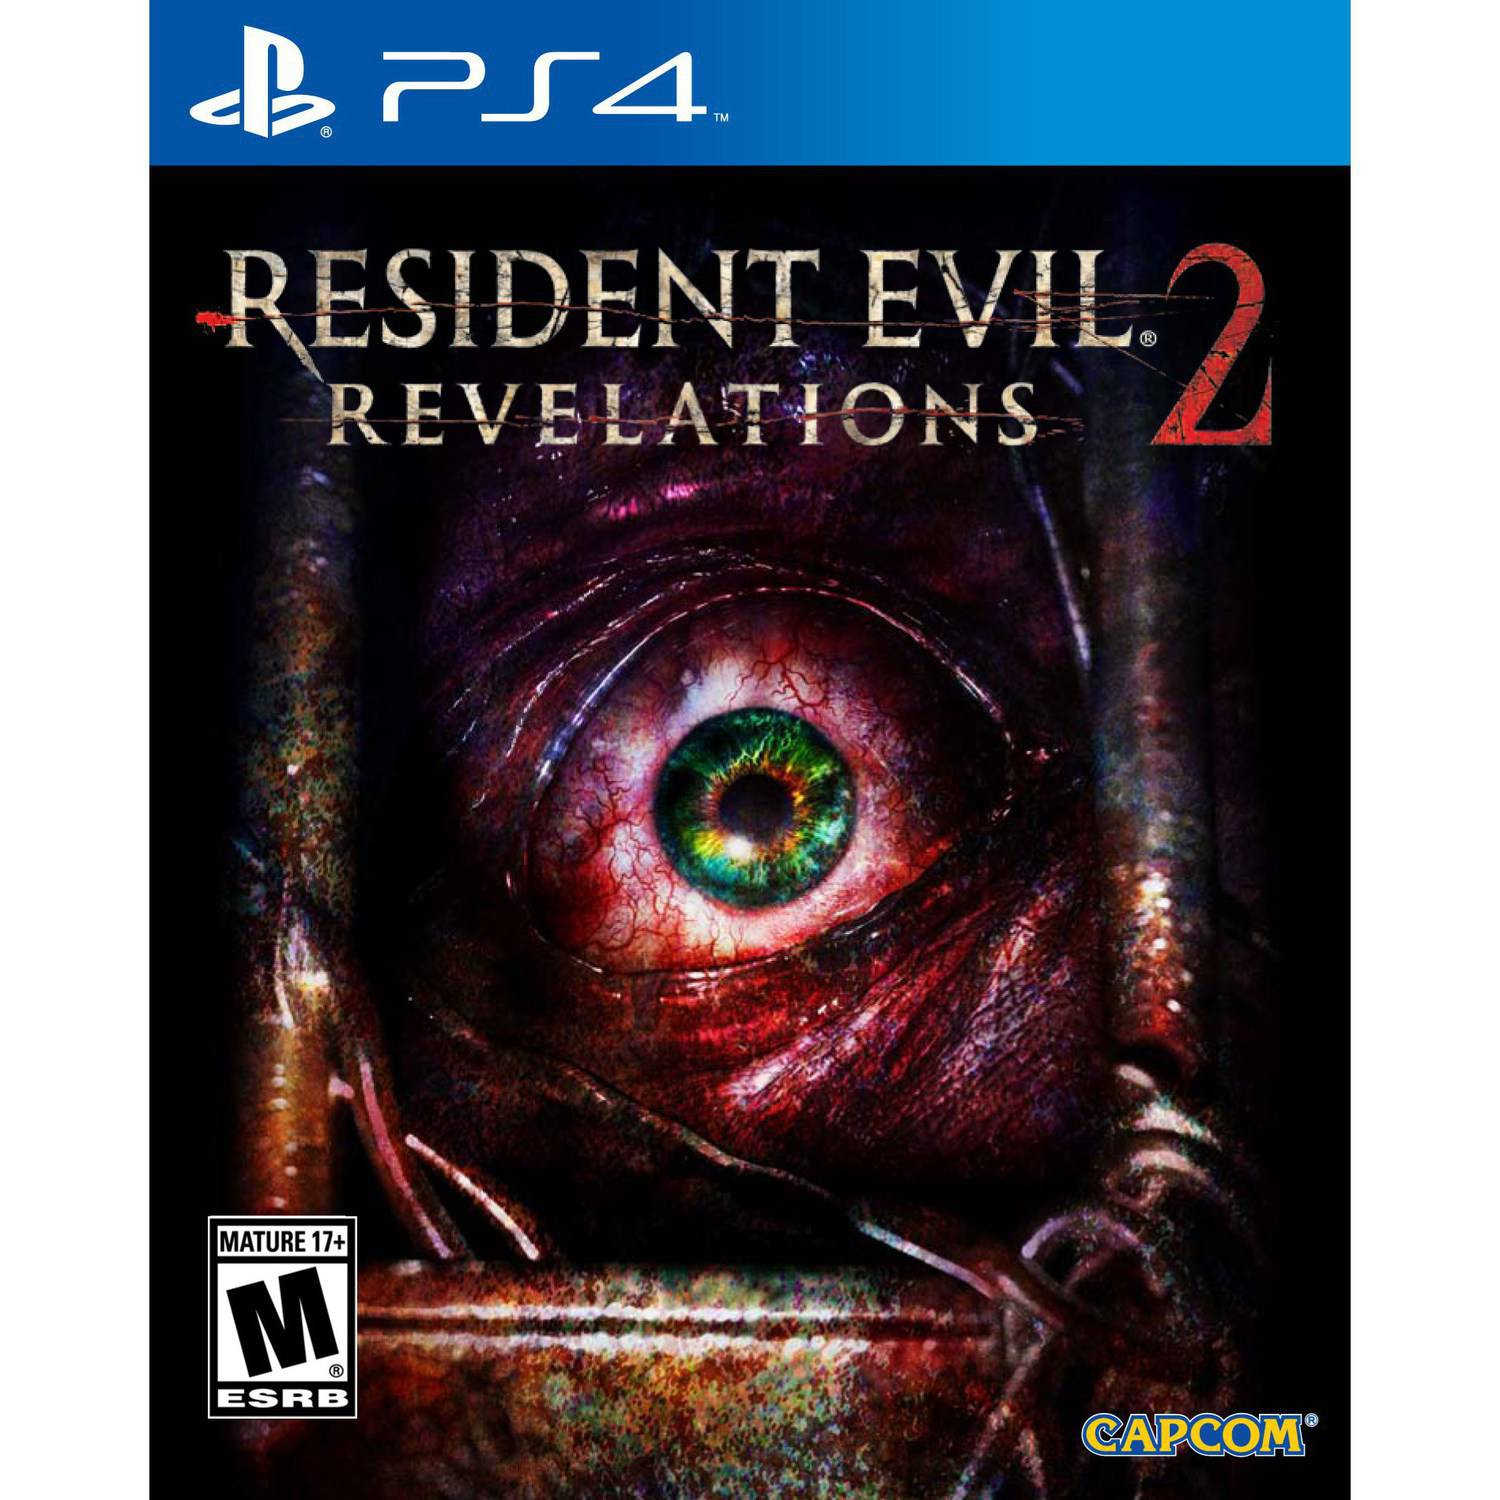 Resident Evil Revelation 2 (PS4) - Pre-Owned